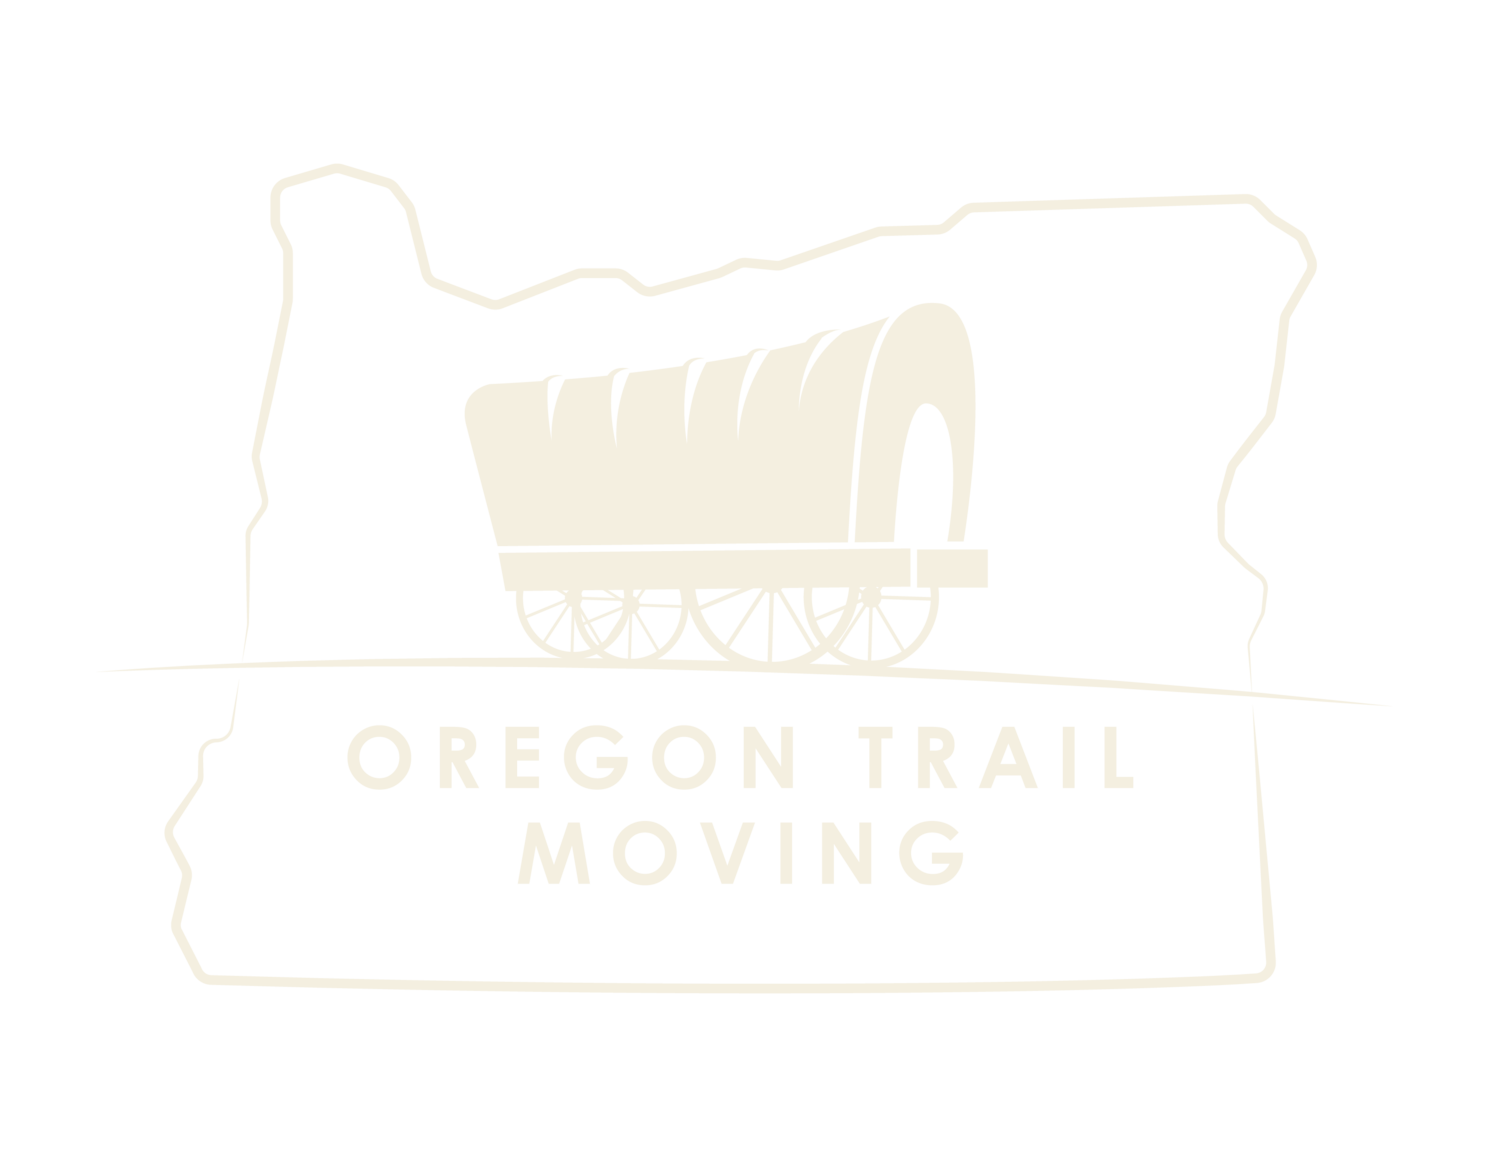 Oregon Trail Moving